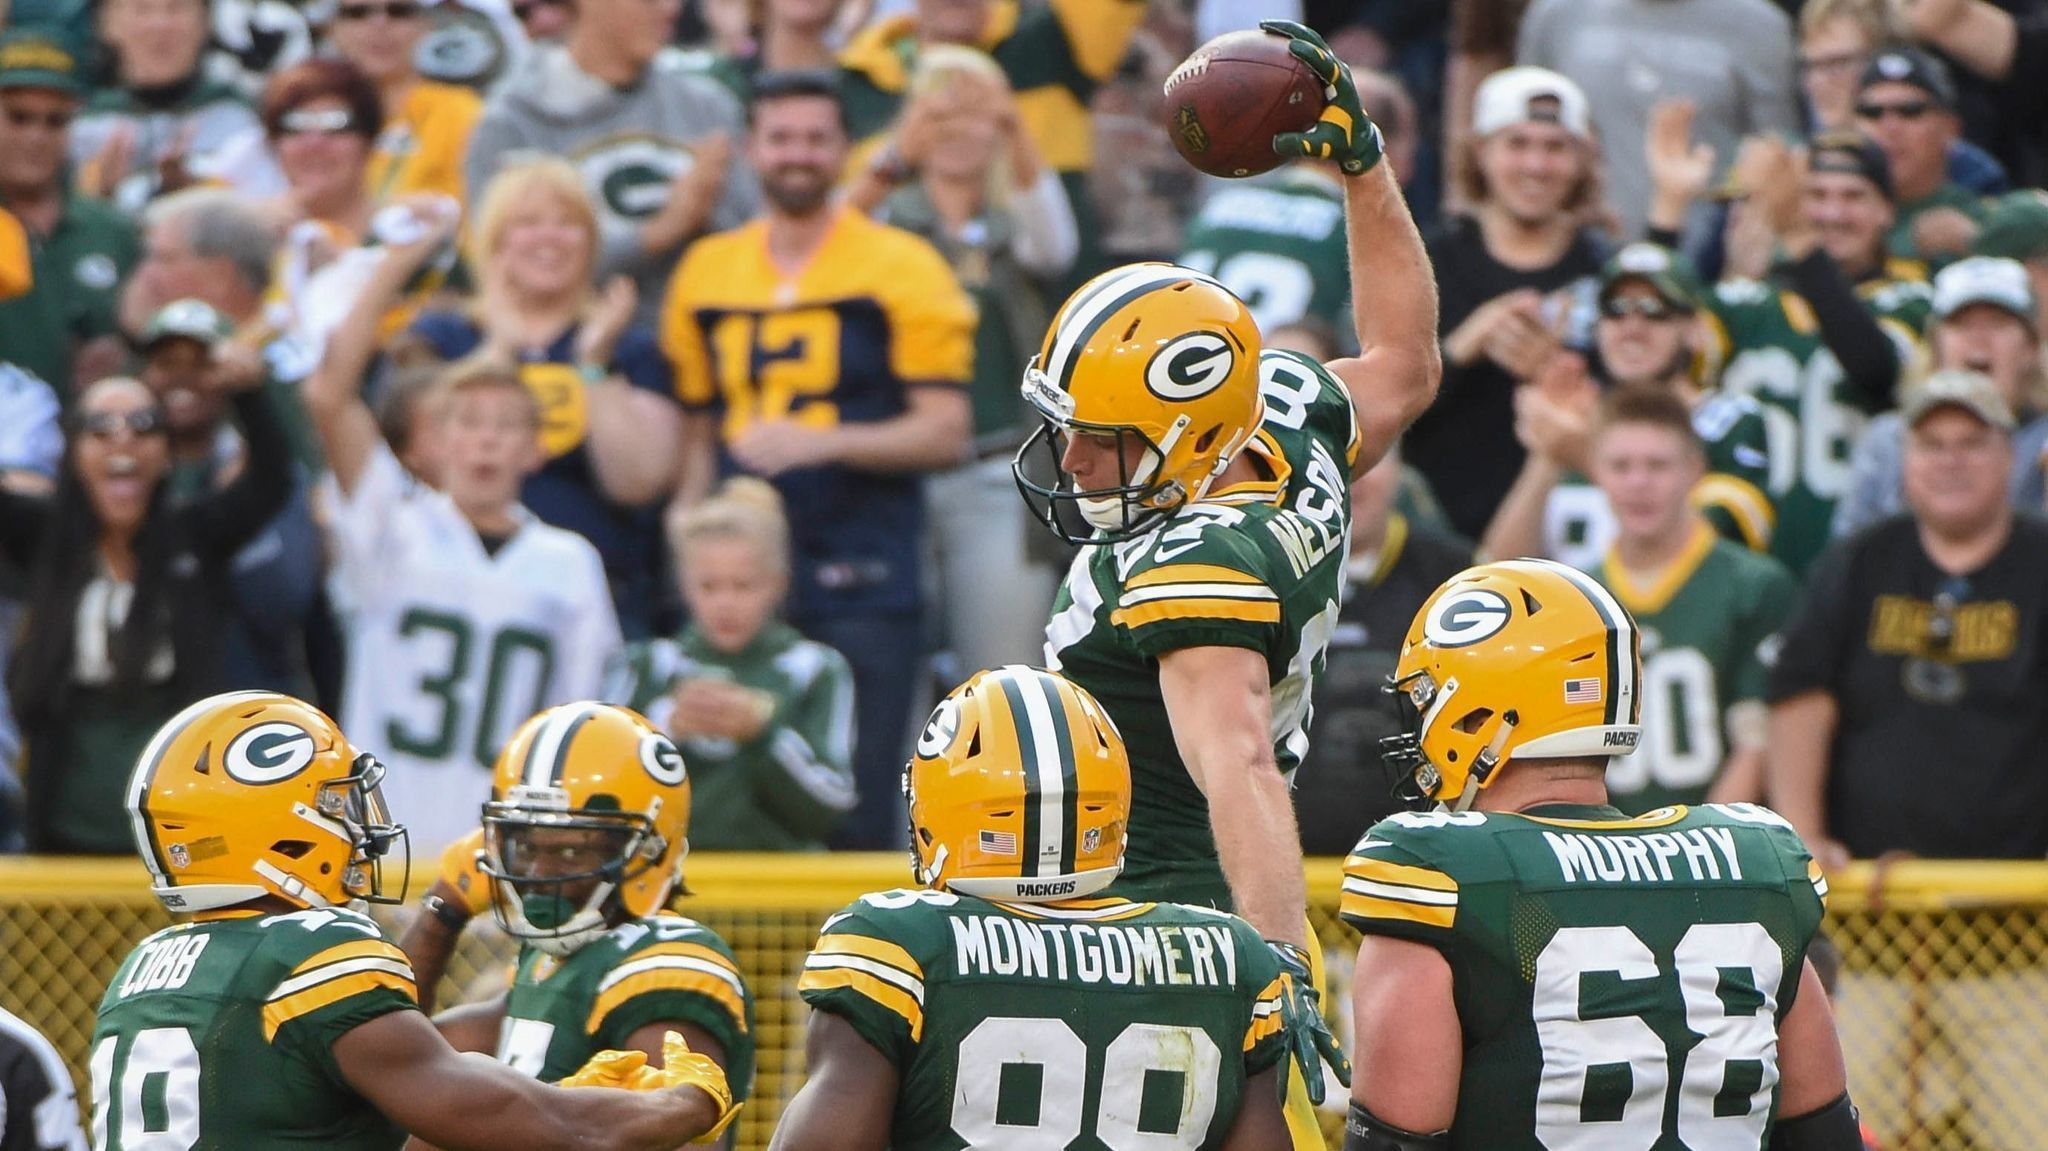 Jordy Nelson s quad injury shouldn t keep him out long The San